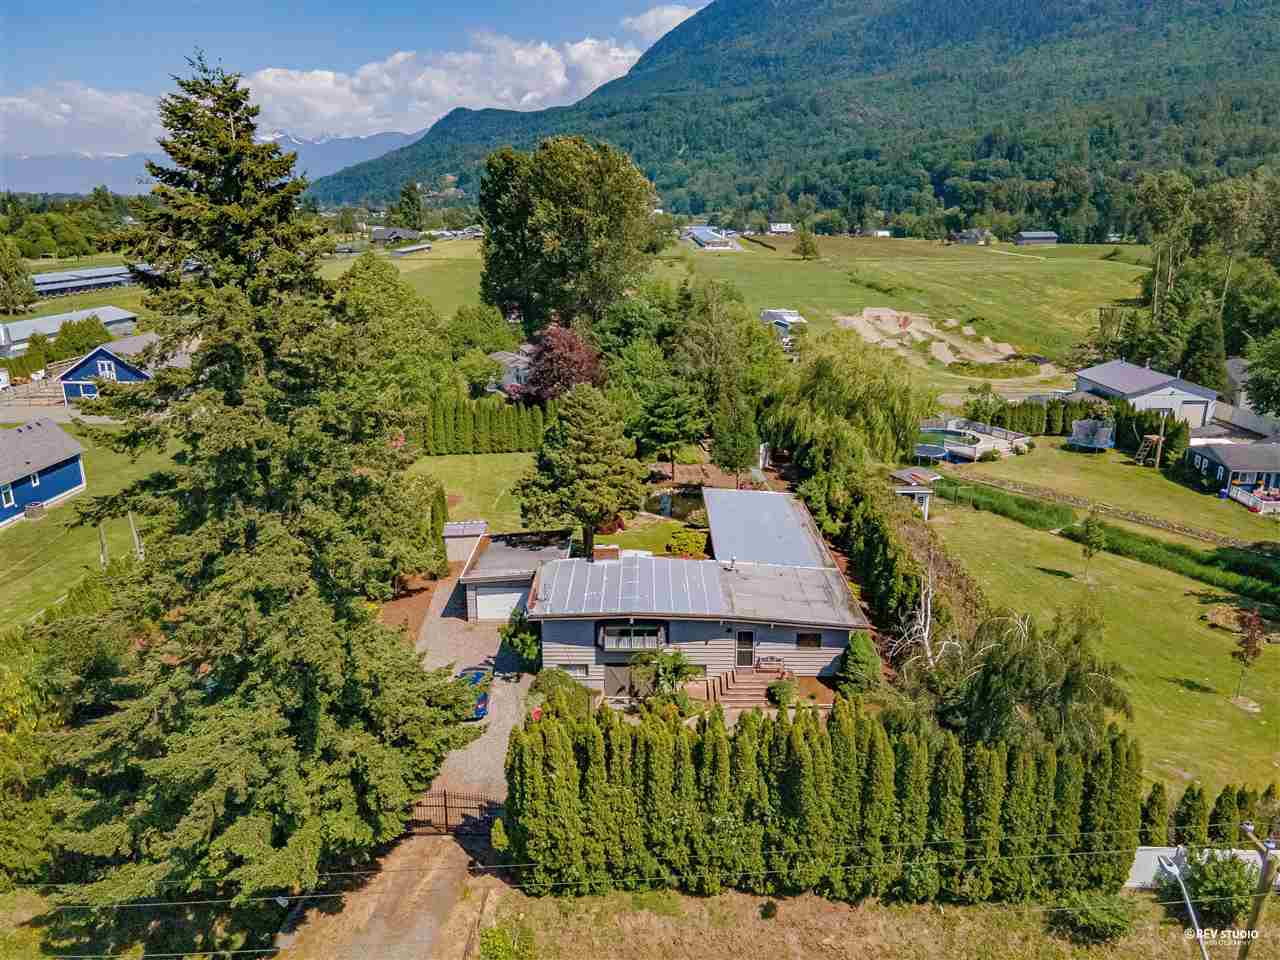 Resort style living on almost 5 acres farm in Yarrow! With stunning landscaping, ponds and complete privacy, the property offers quick access to city centers, hwy 1 and all other amenities while being on a quiet back street. Only 15 min drive to Abbotsford, 10 min drive to Cultus Lake, and Garrison village. This marvelous property has so much to offer. 2 homes, a large barn with 3 horse stalls, a loft, power and water. Main house has 3 bedrooms, each with en suite and a truly GREAT room. Mobile has its own garden, separate driveway, separate septic, above ground pool and has potential for extra rental income.